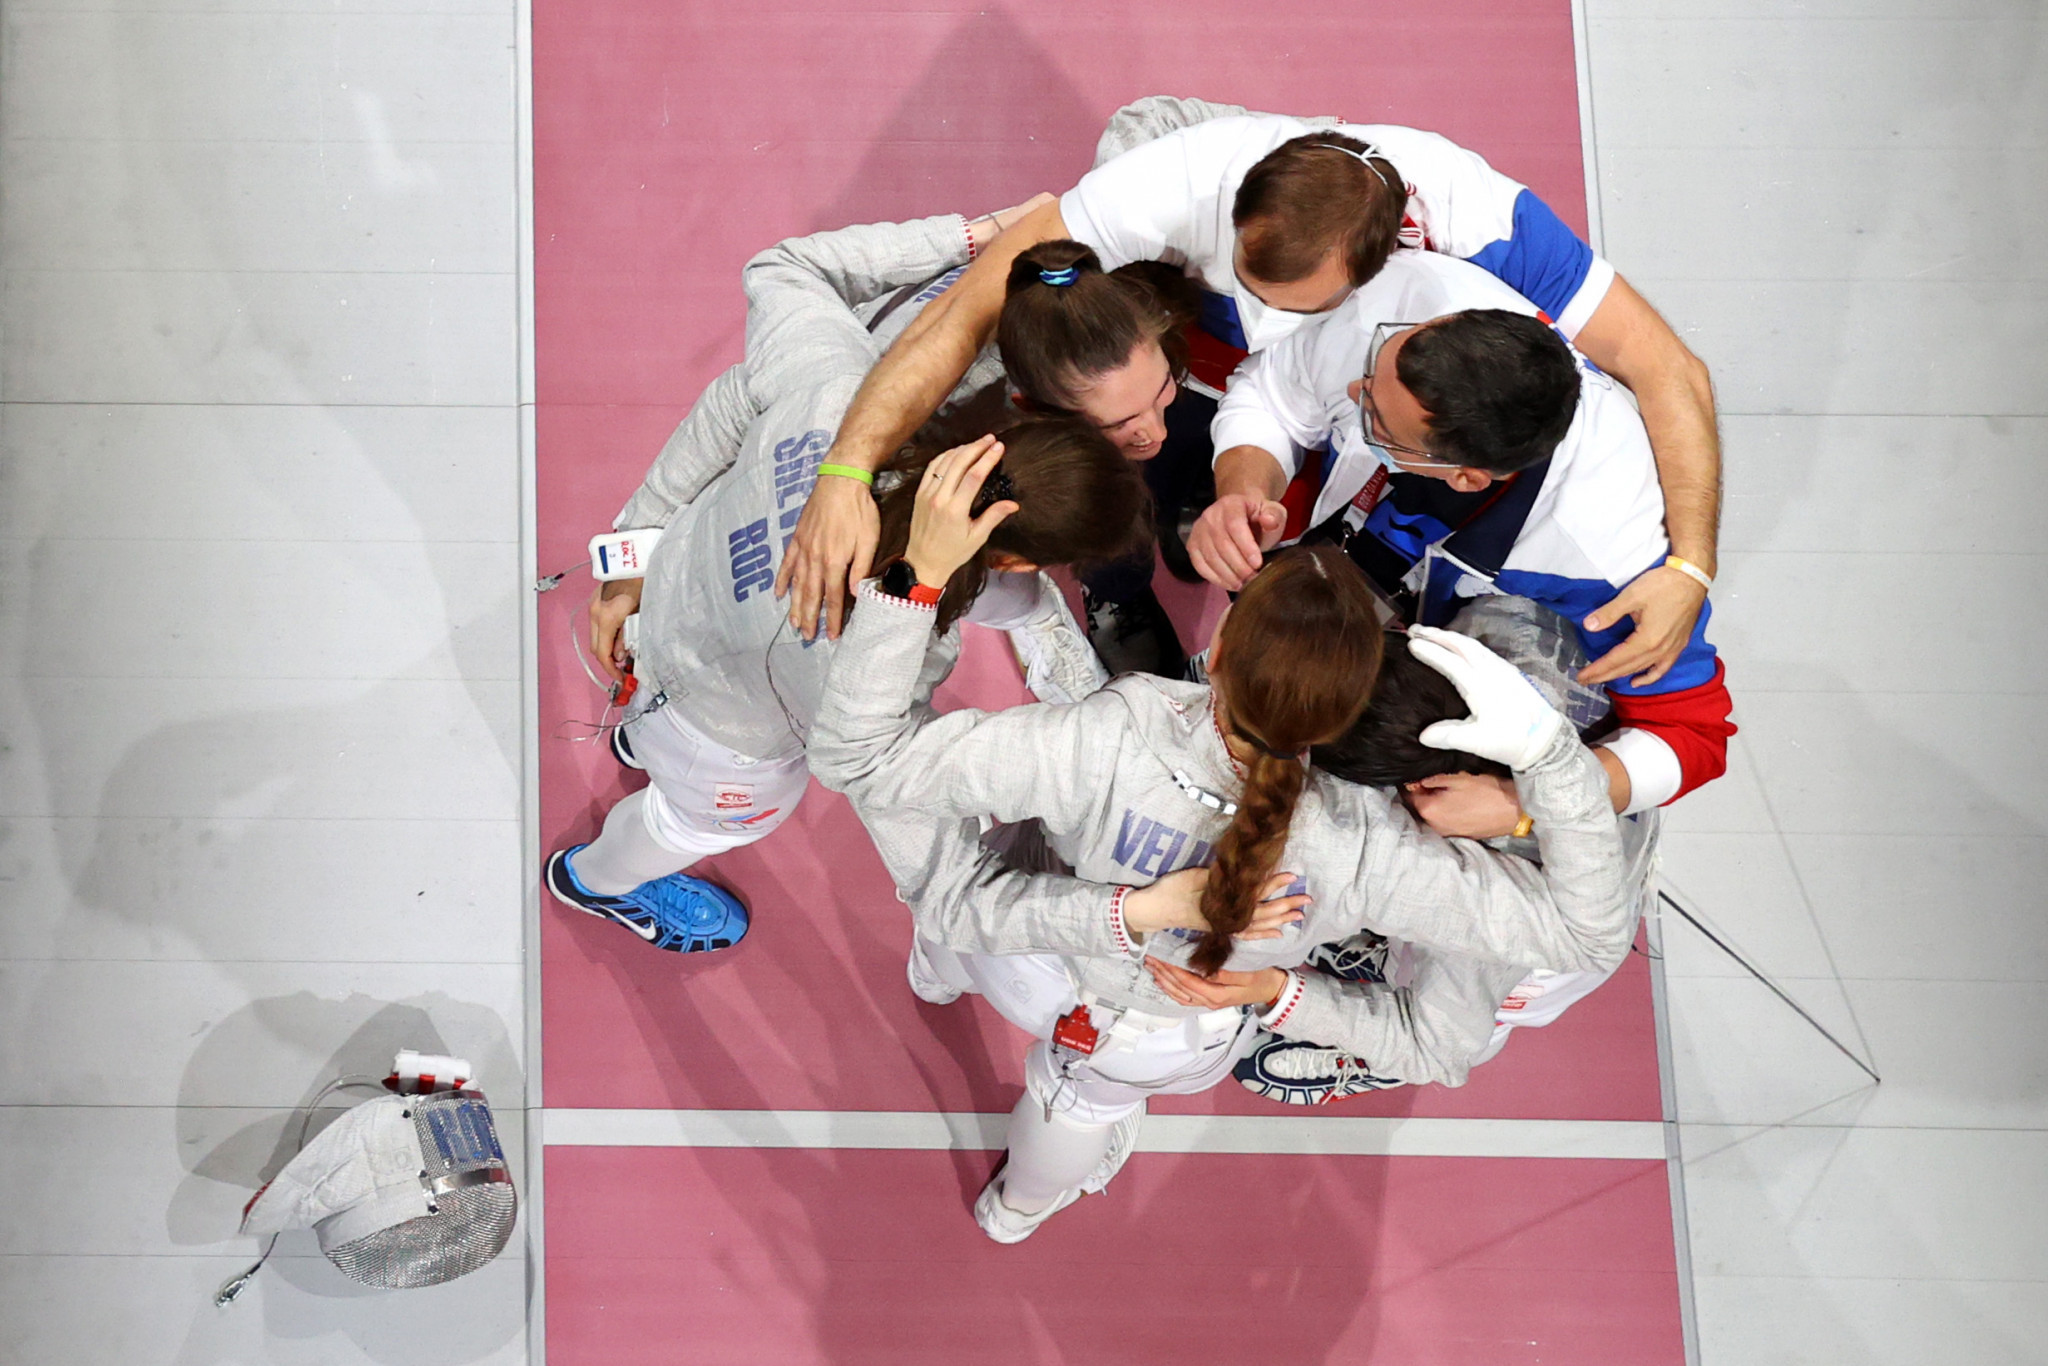 Team ROC celebrate winning the women's team sabre fencing final, after defeating France ©Getty Images